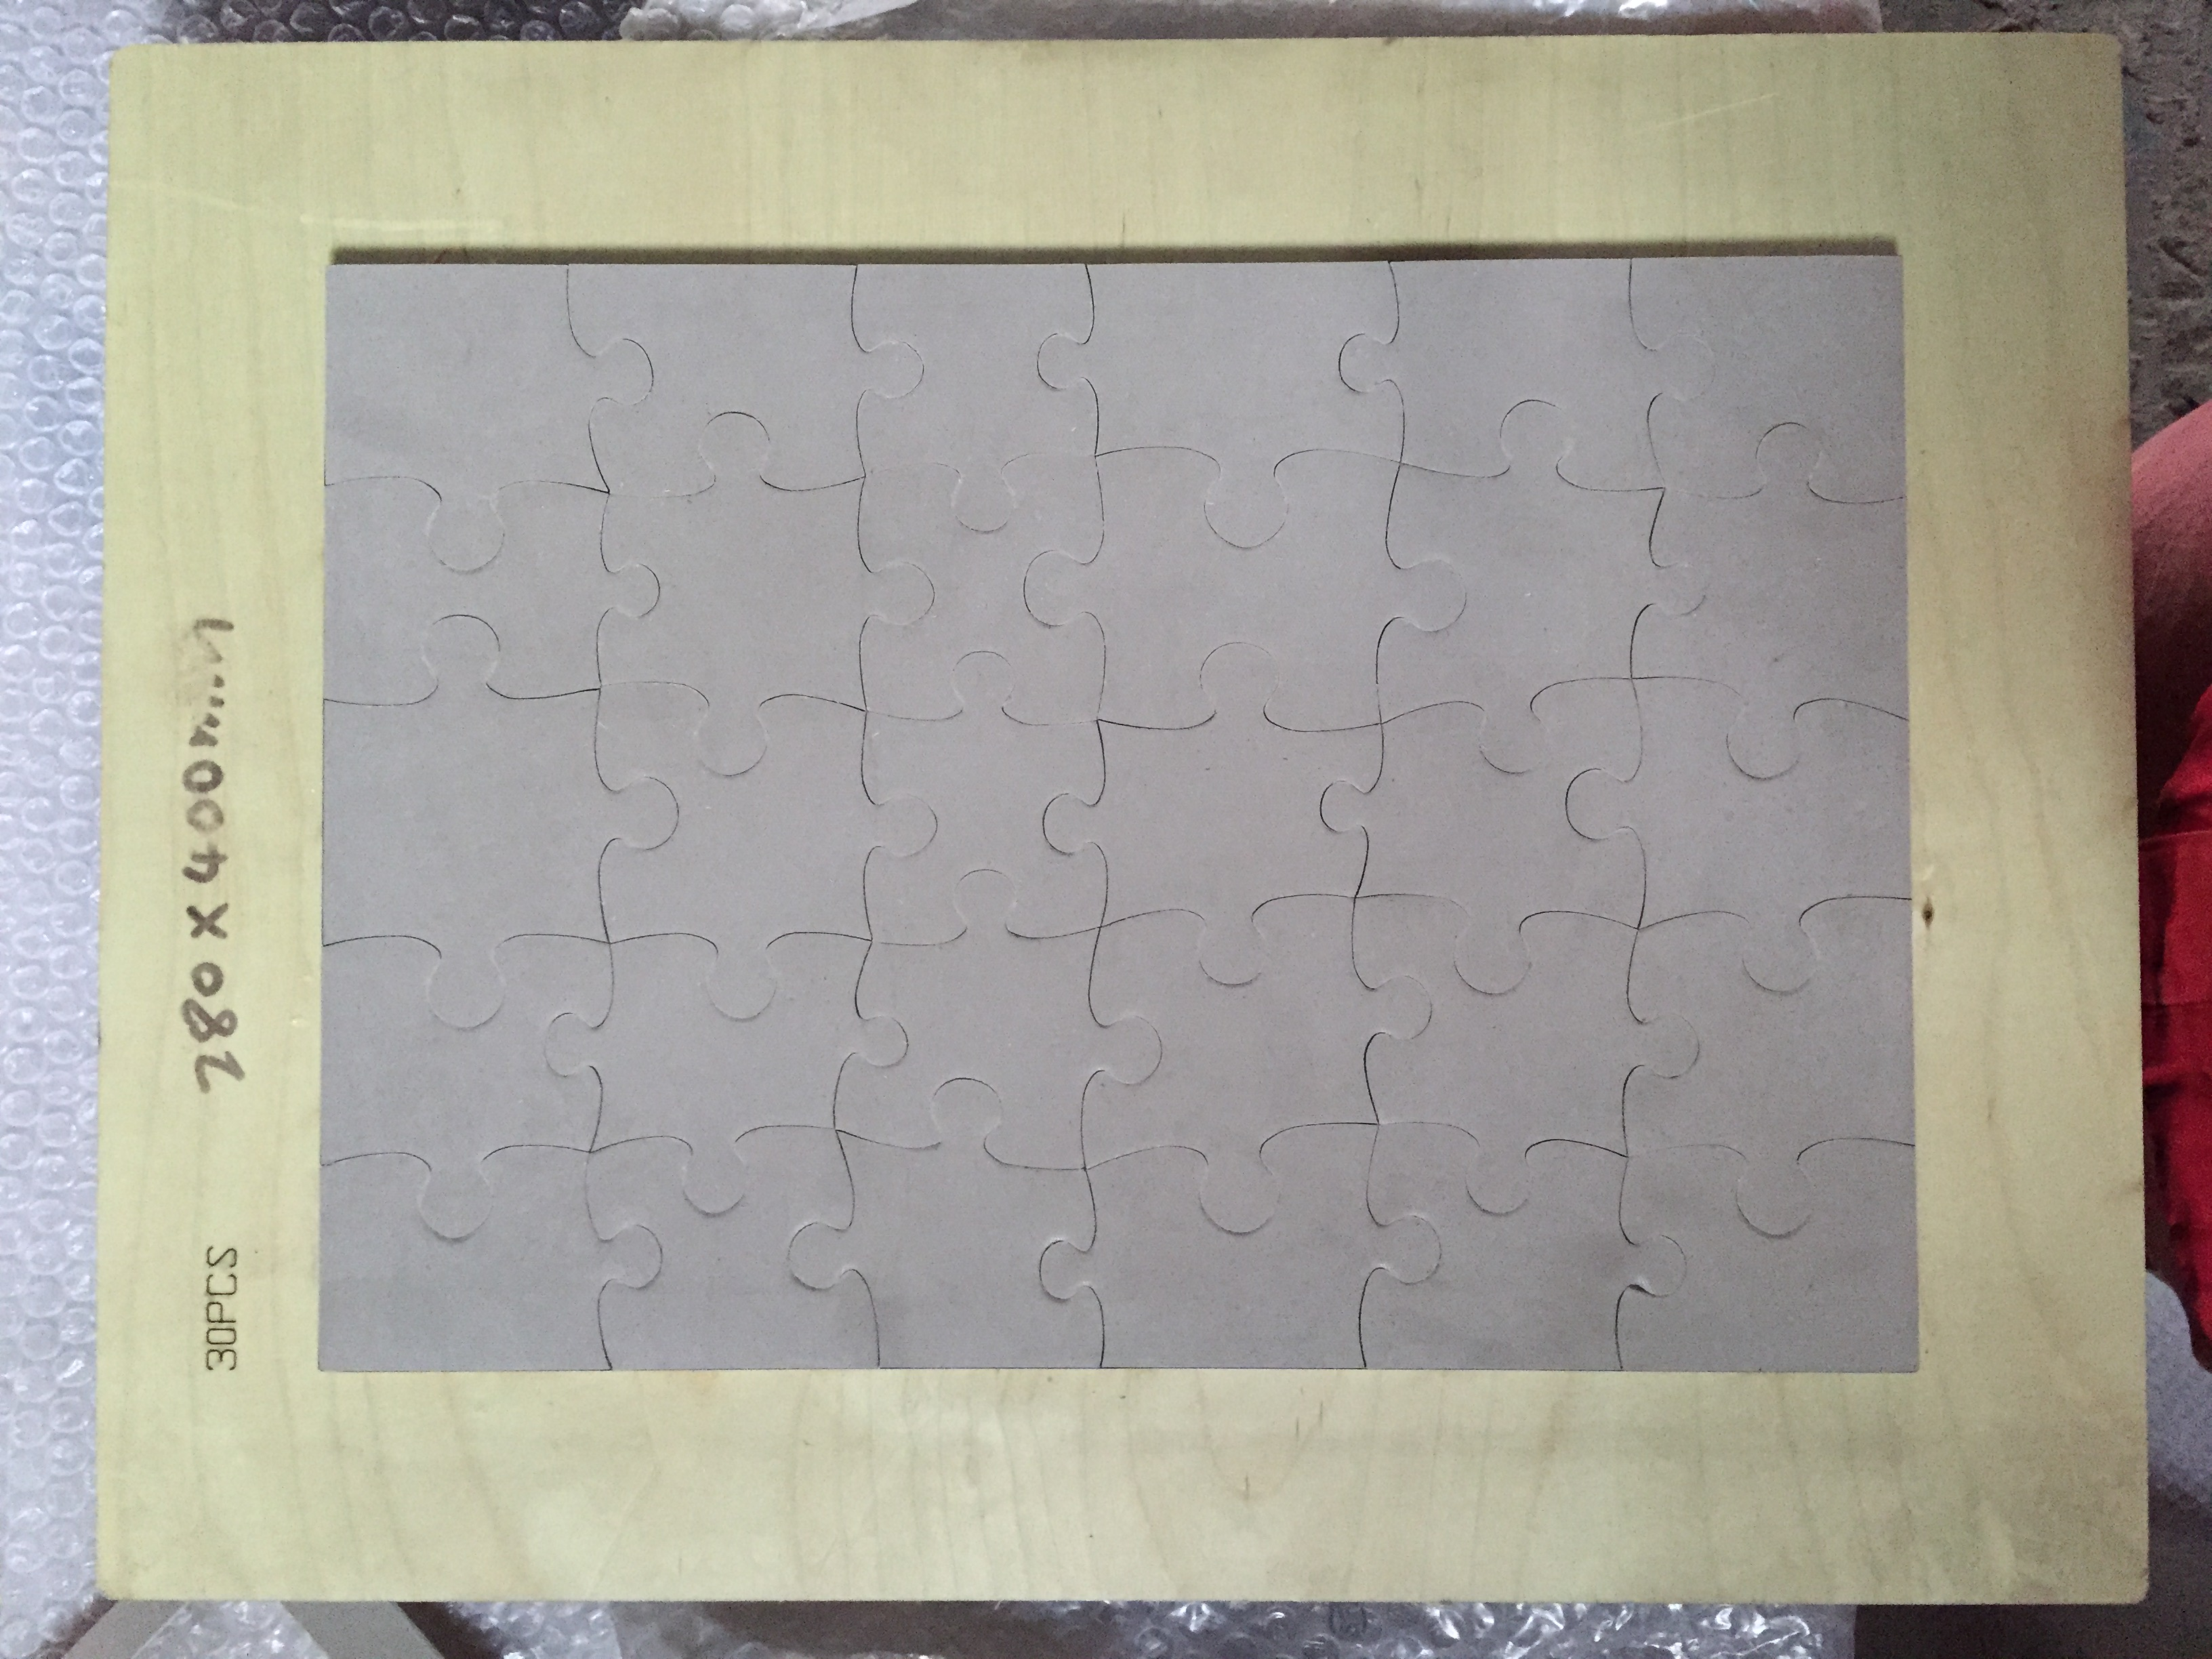 Steel rule jigsaw puzzle 750*500mm-1000pcs special SDESIGN